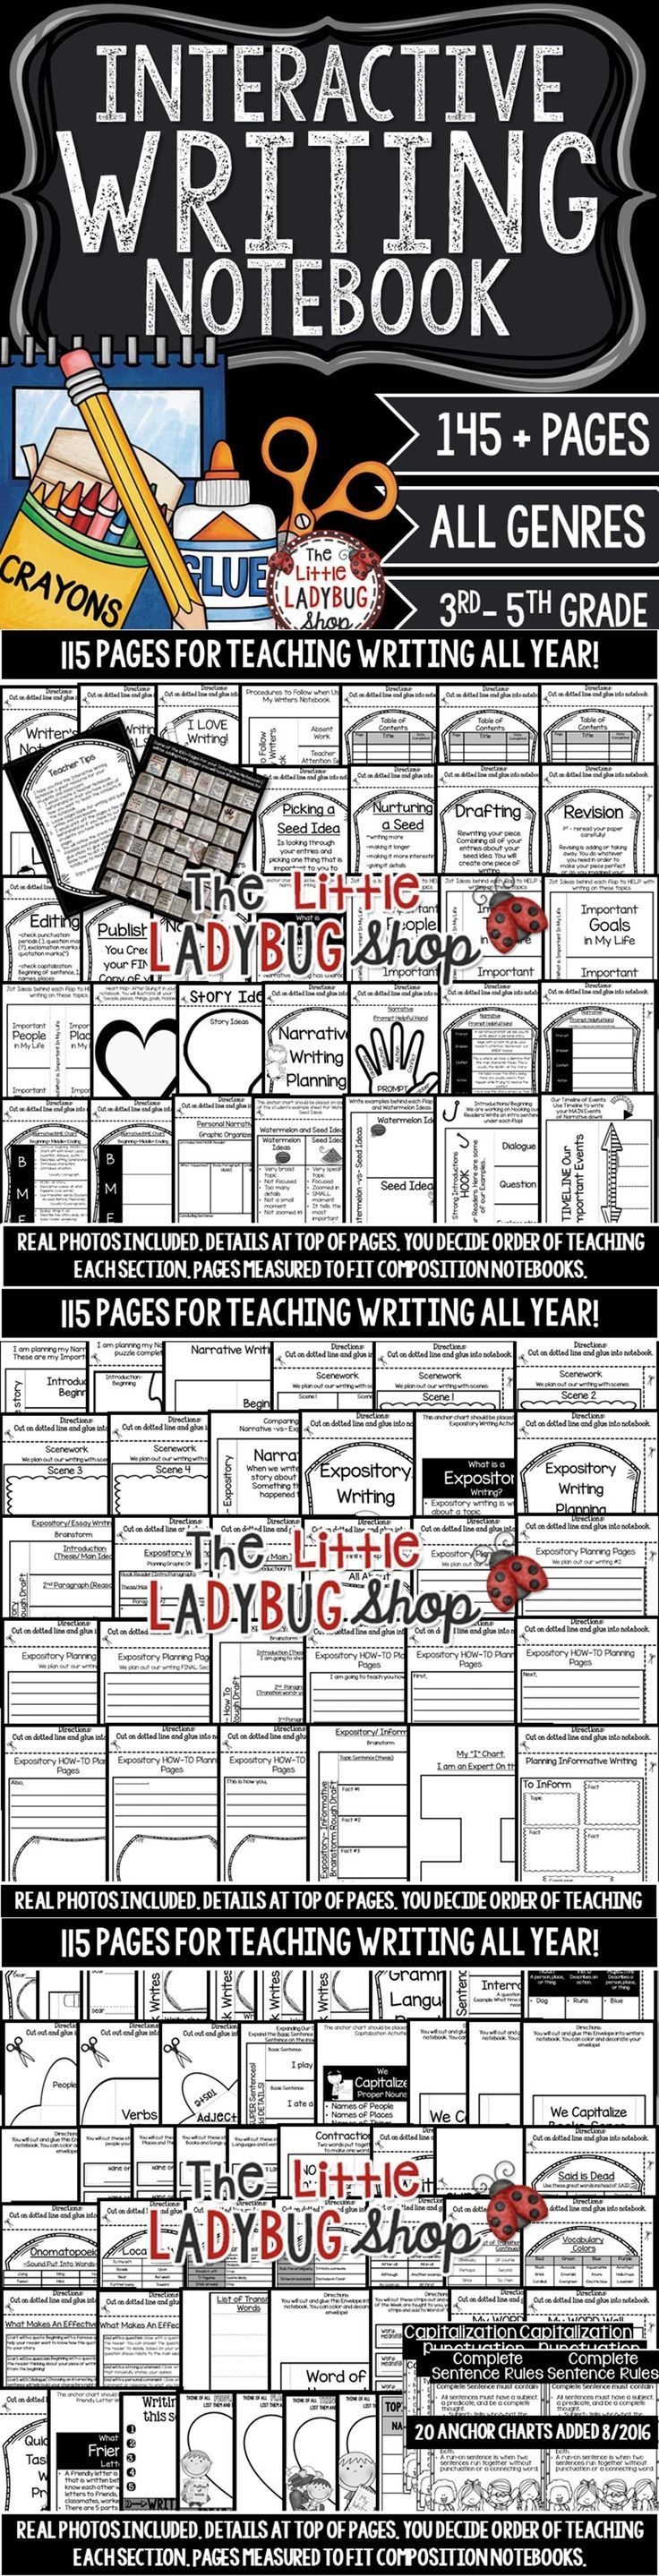 WRITING INTERACTIVE NOTEBOOKS are an EXCITING way to teach Writing! This notebook is VERY detailed and includes components to a Balanced ELA Writers Workshop! I created this notebook with activities that I used to build a strong foundation and a LOVE for